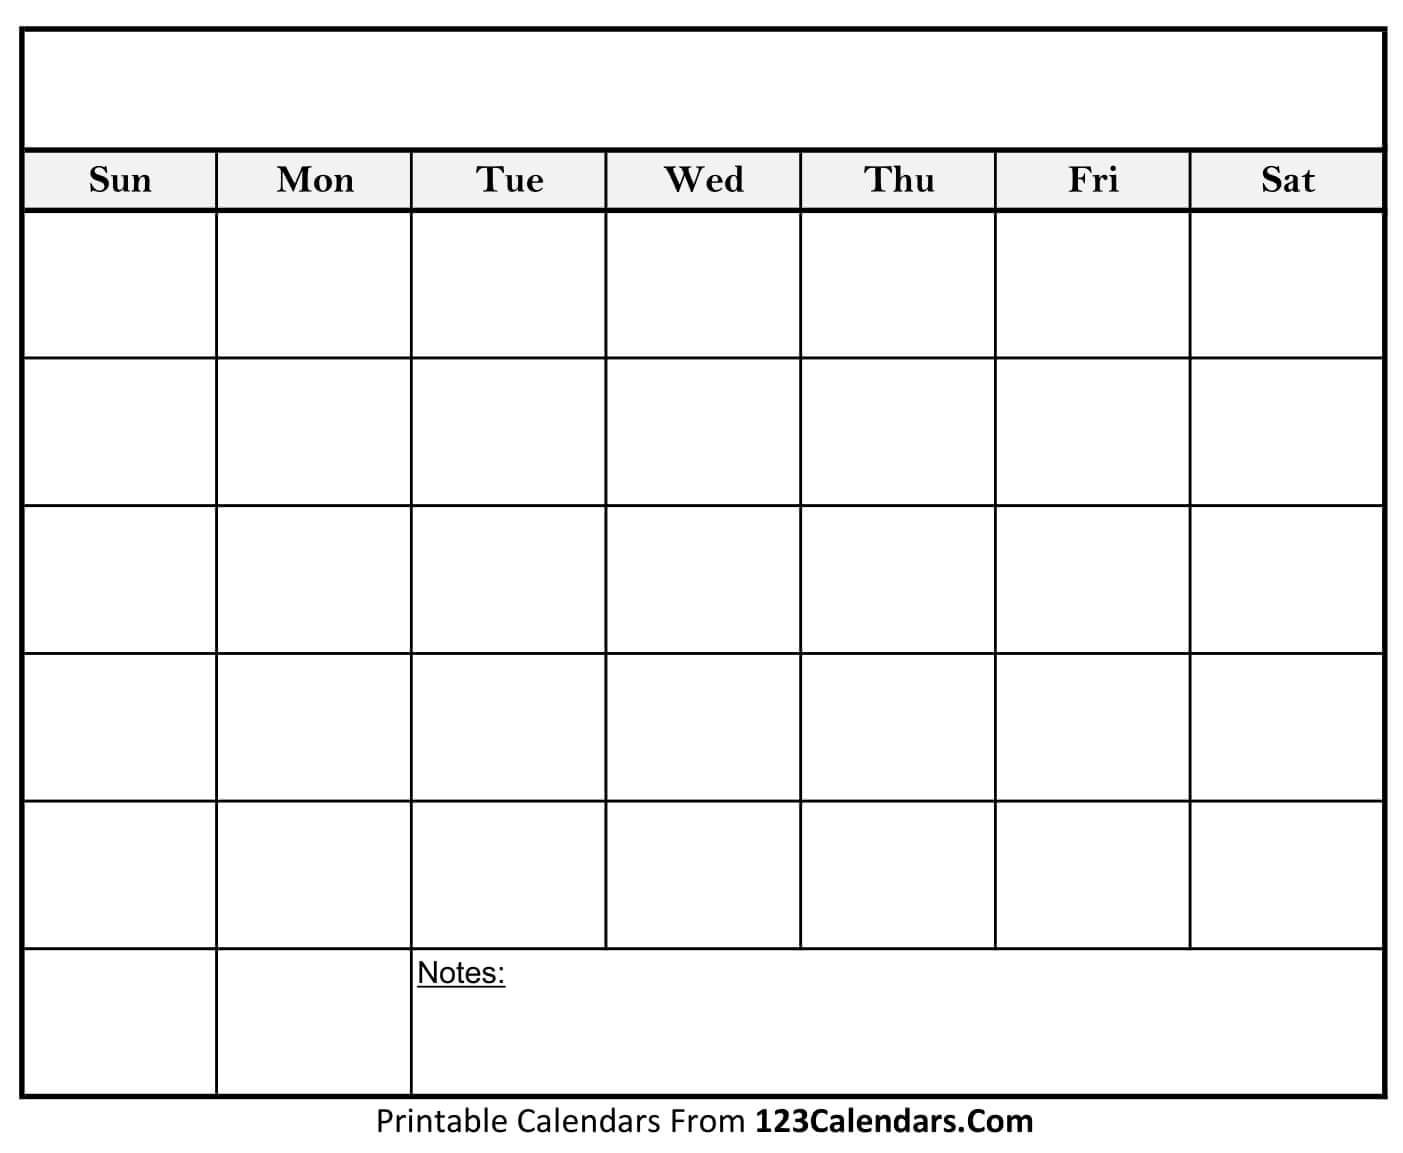 Free Printable Blank Calendar | 123Calendars Blank Calendar To Fill In